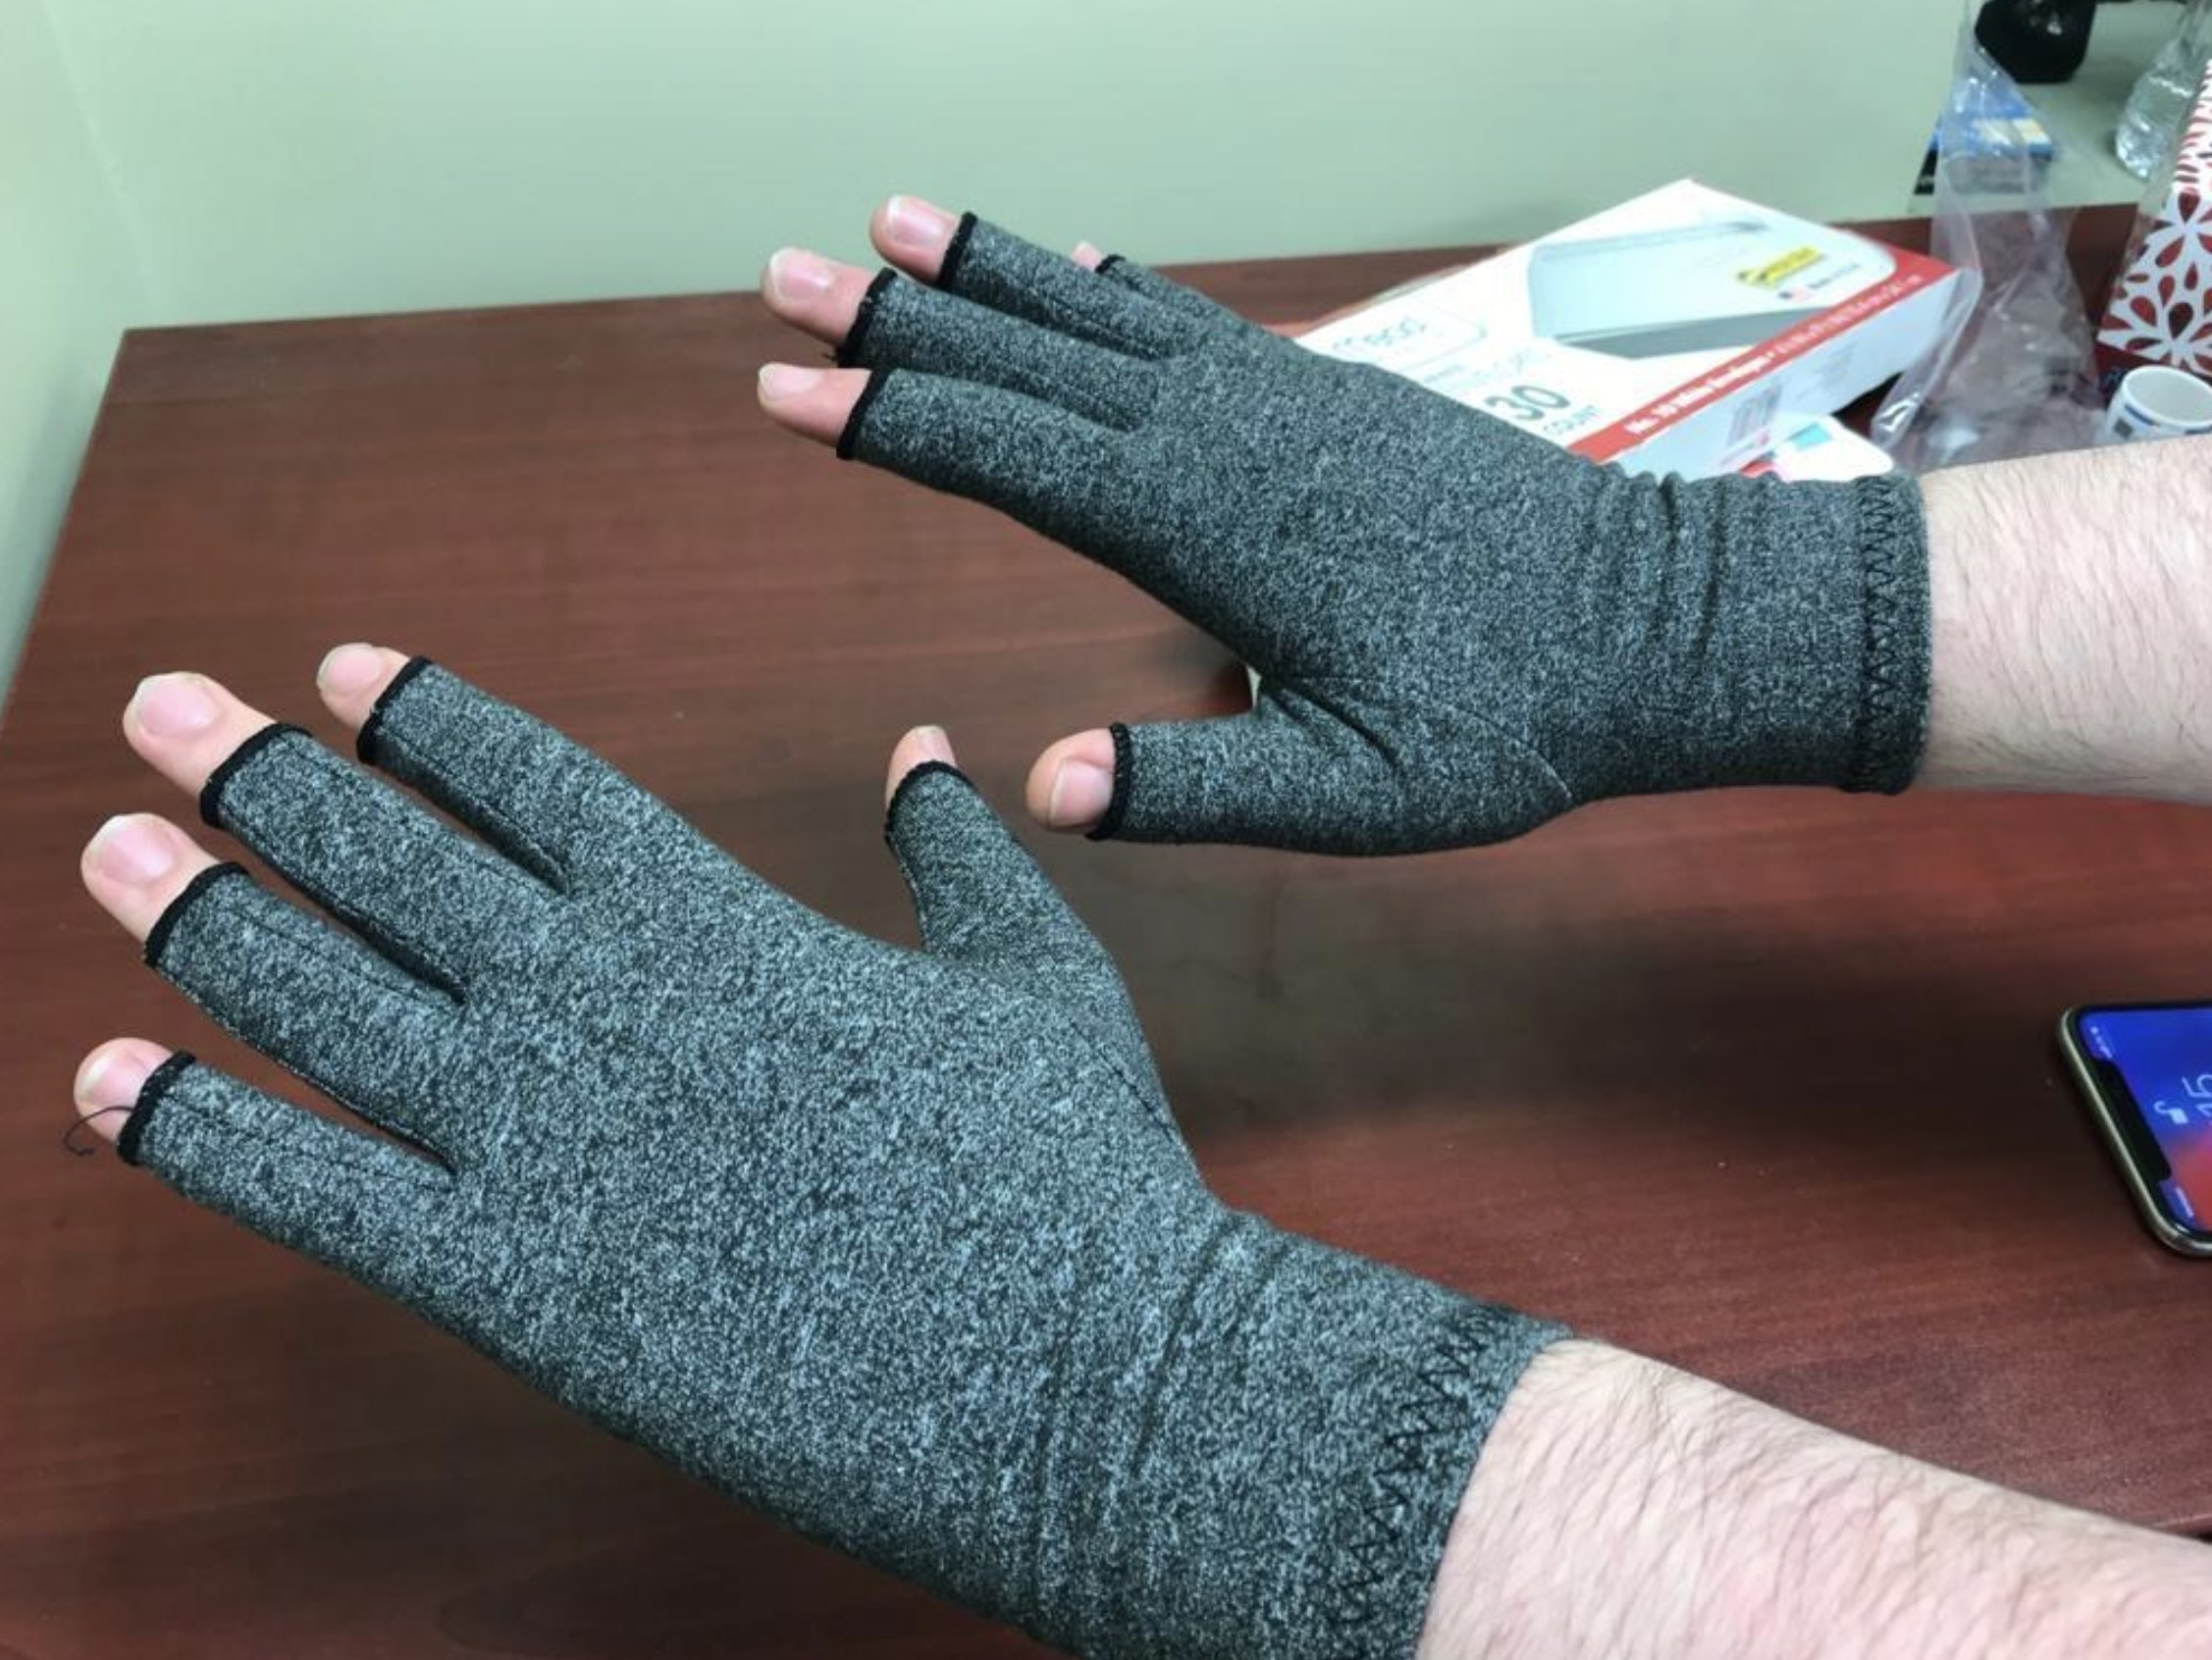 reviewer photo showing the gloves on their hands